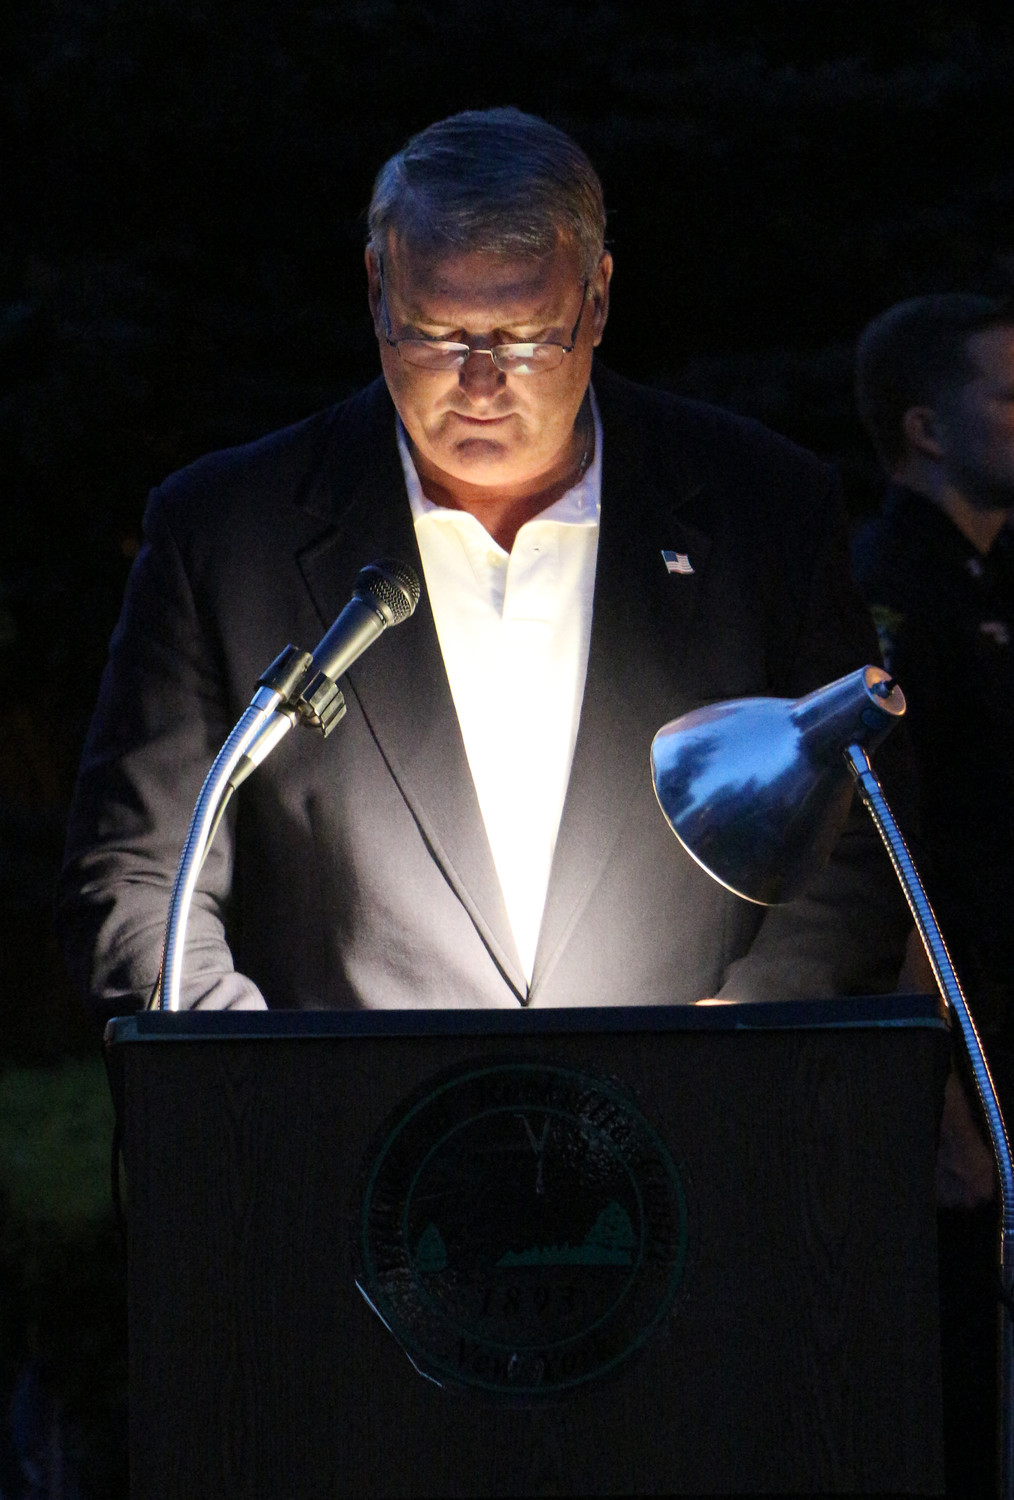 Pat O'Brien, whose brother and brother-in-law died on Sept. 11, 2001, spoke at the village's annual ceremony last Sunday.